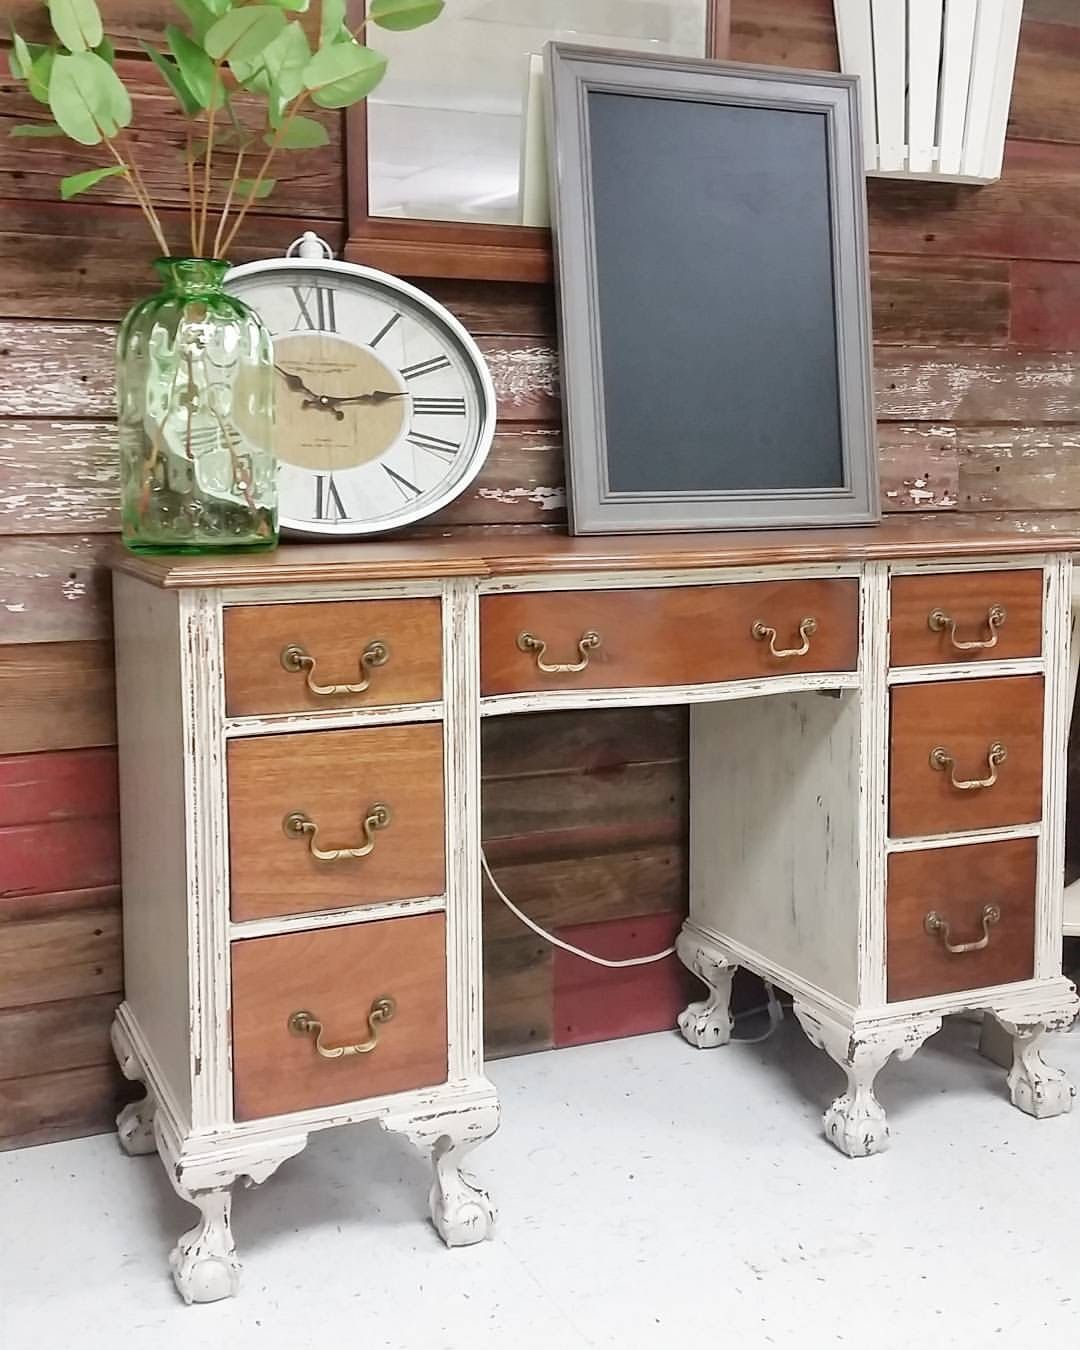 2017 Open Dates (With images) Furniture, Home decor